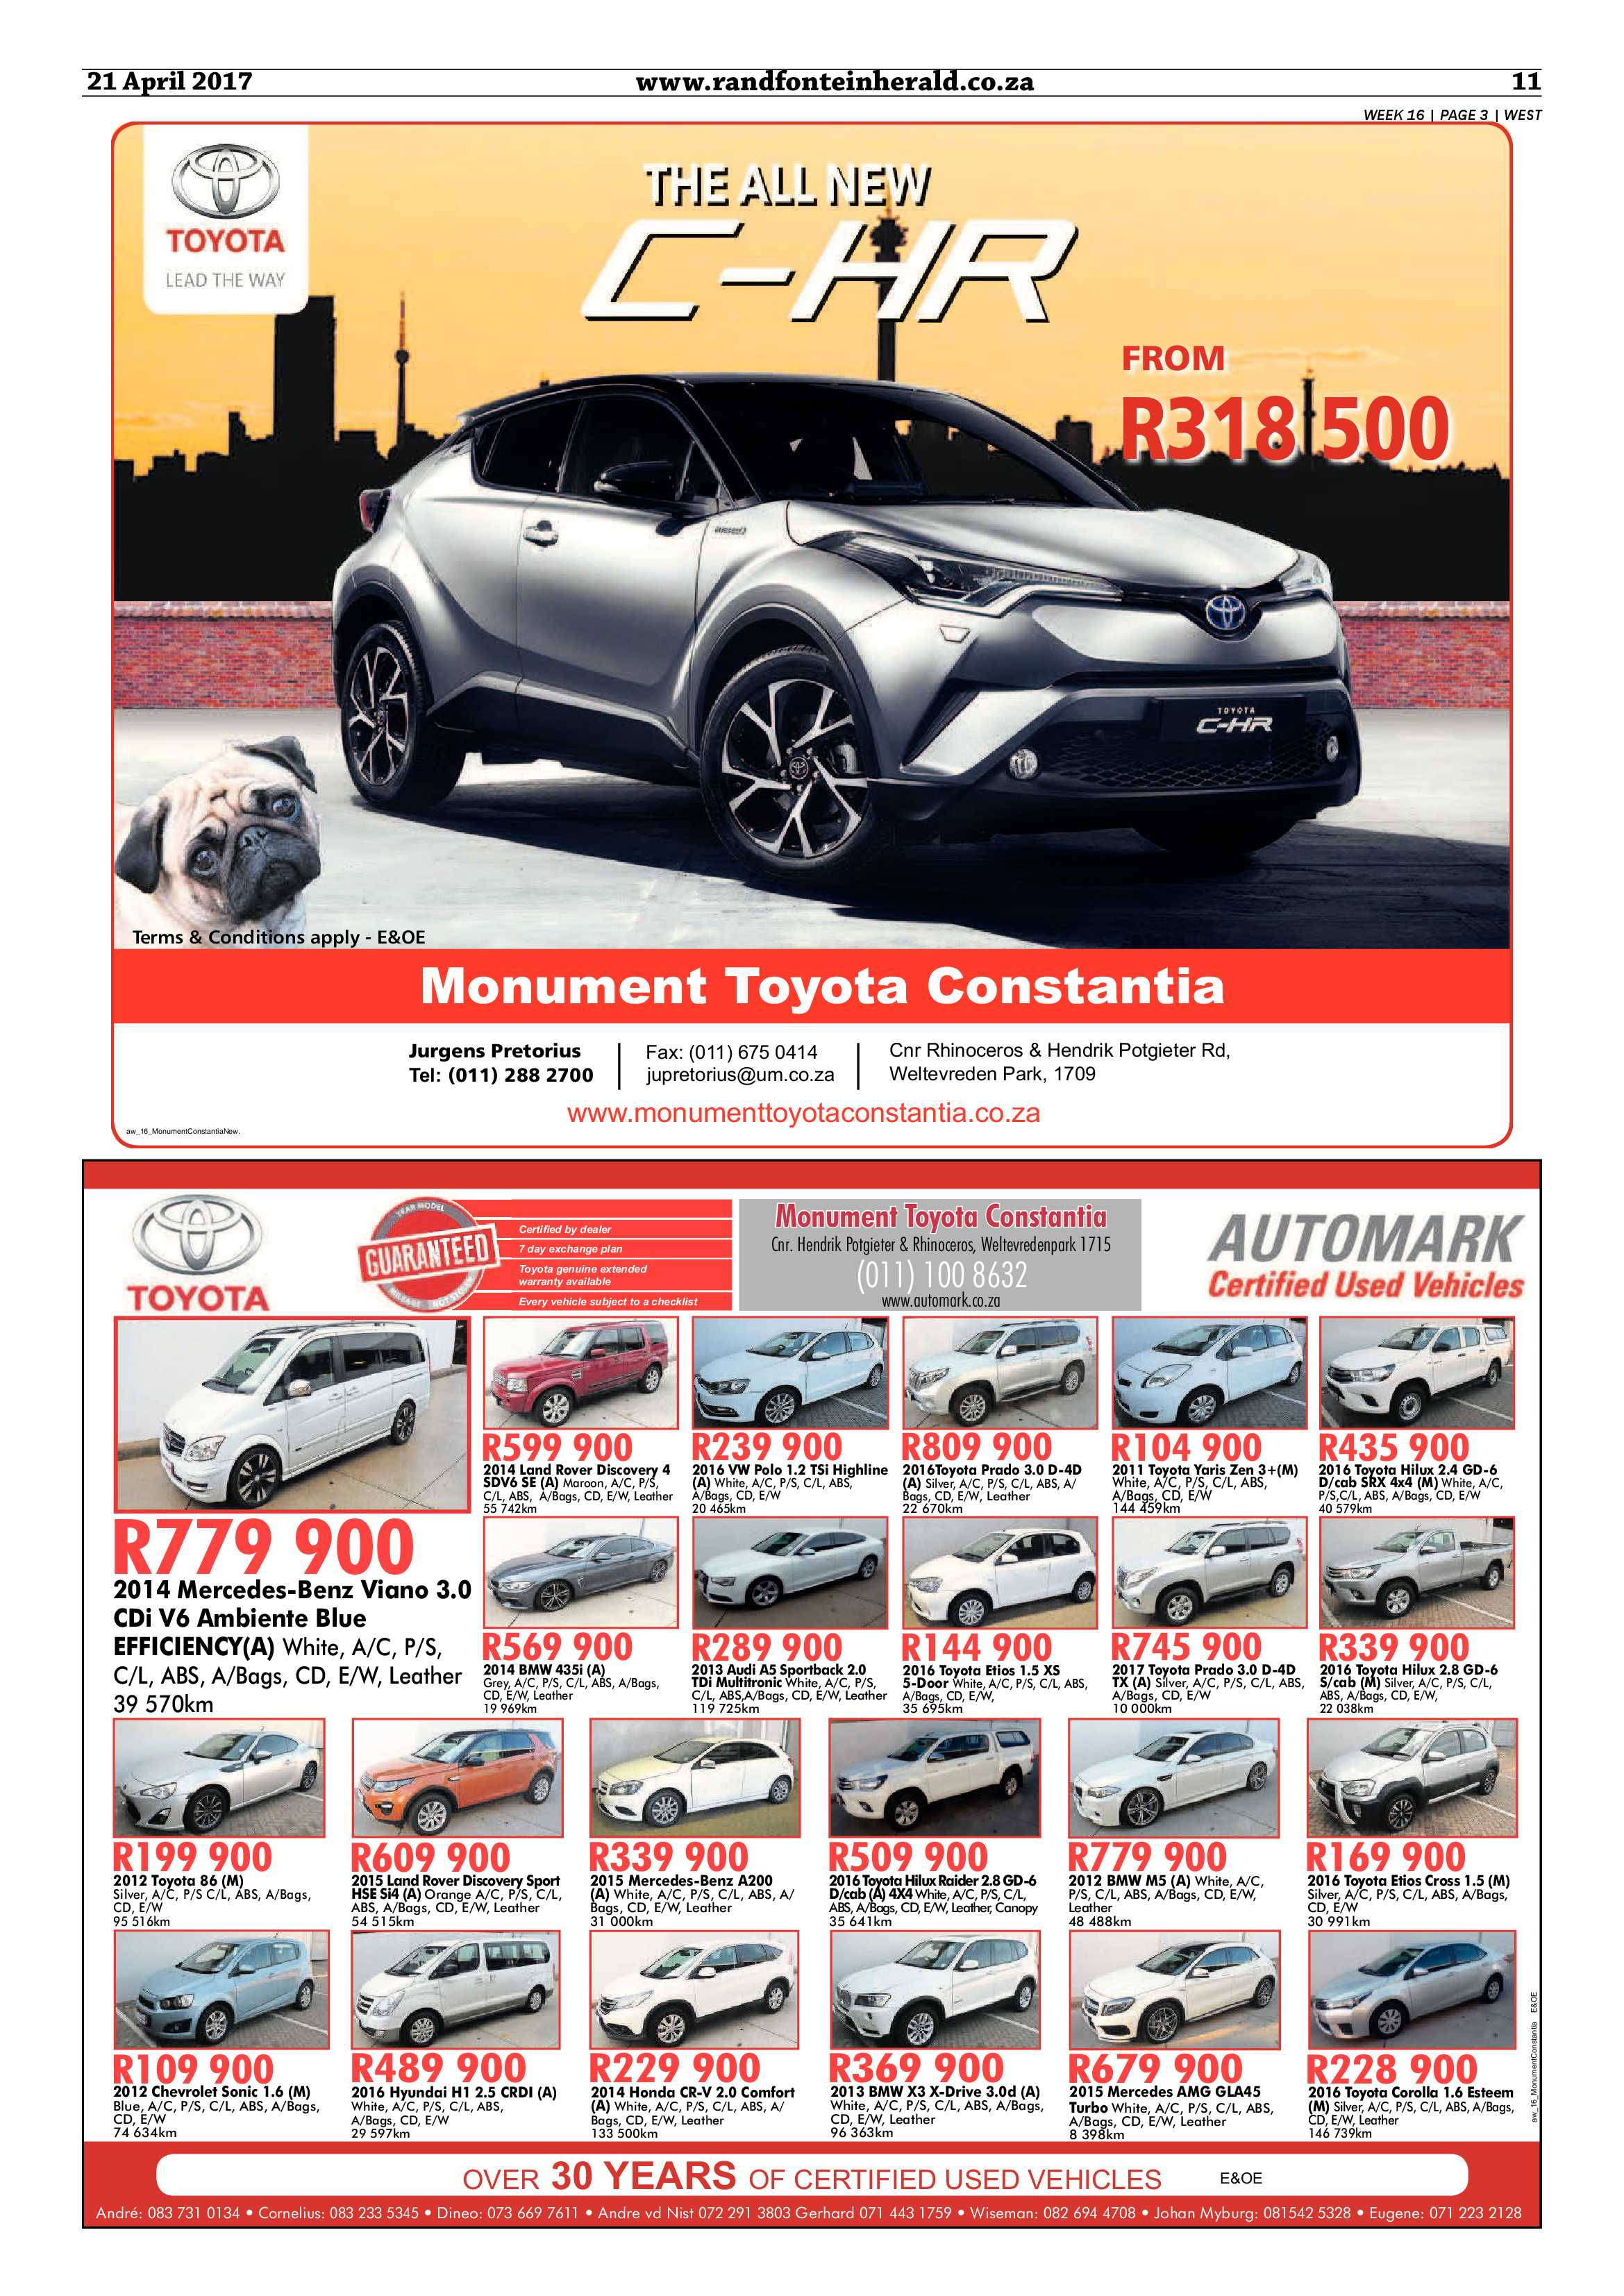 randfontein-herald-21-april-2017-epapers-page-11